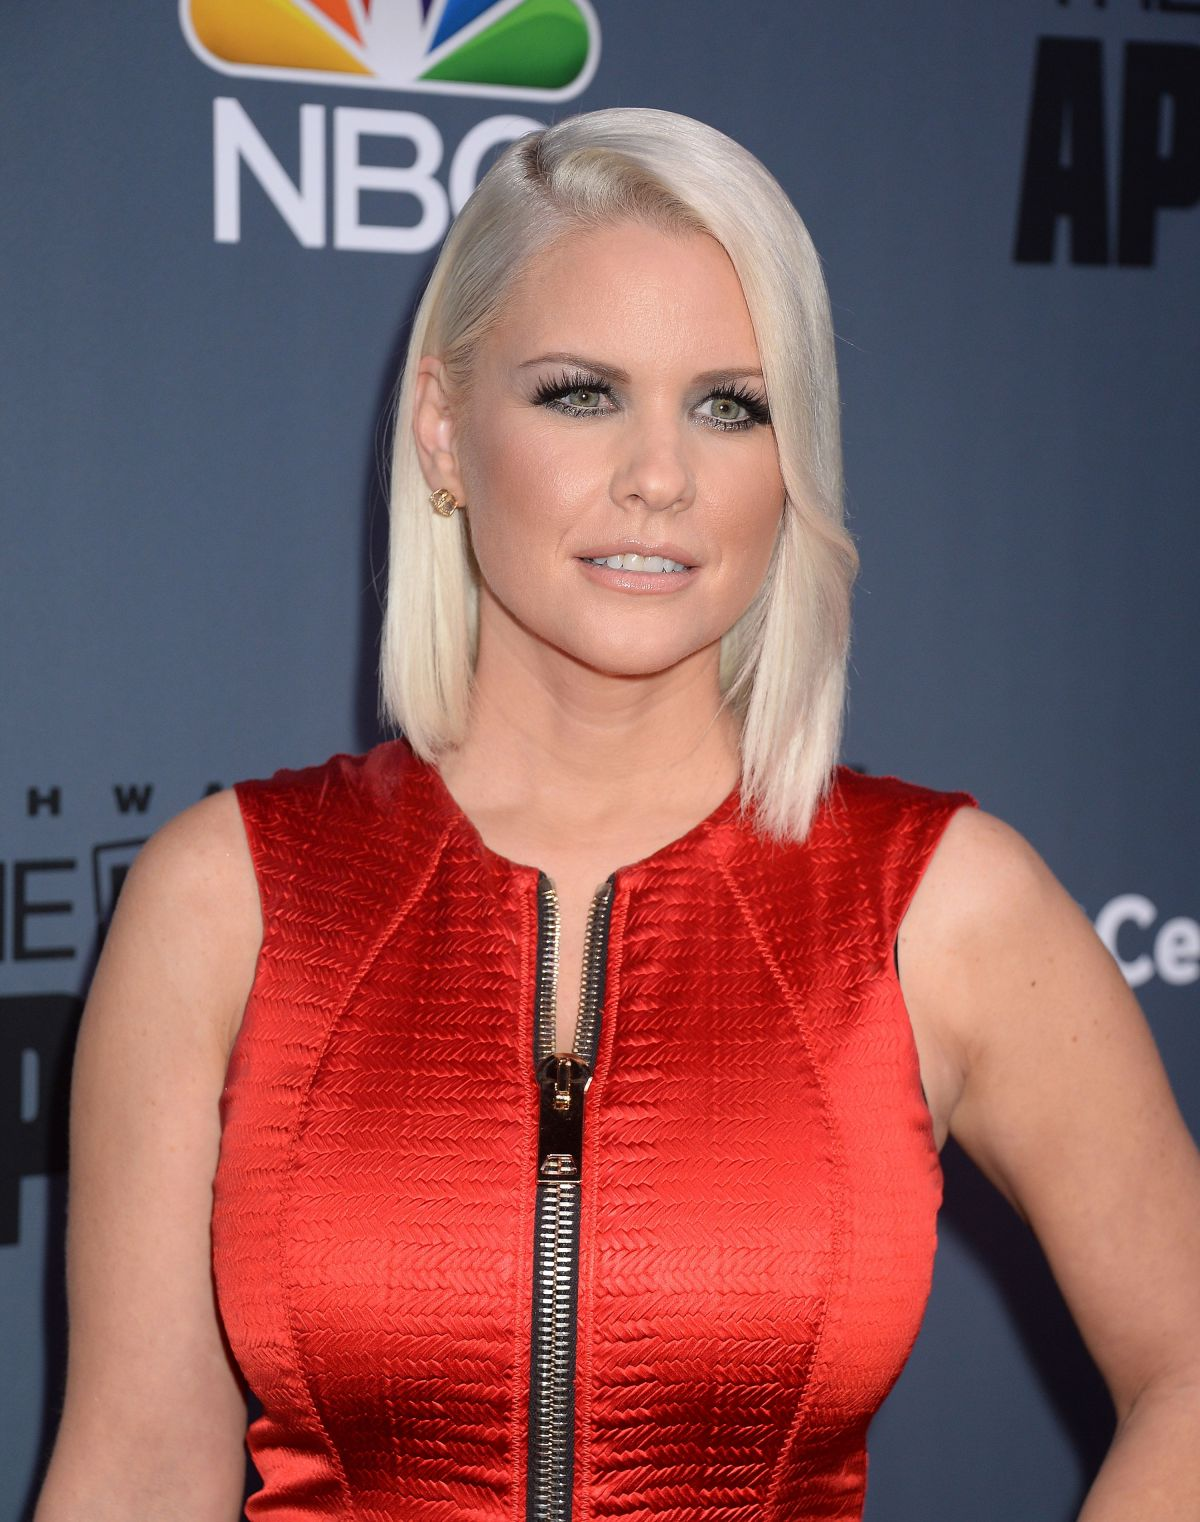 Carrie keagan at new celebrity apprentice press conference in